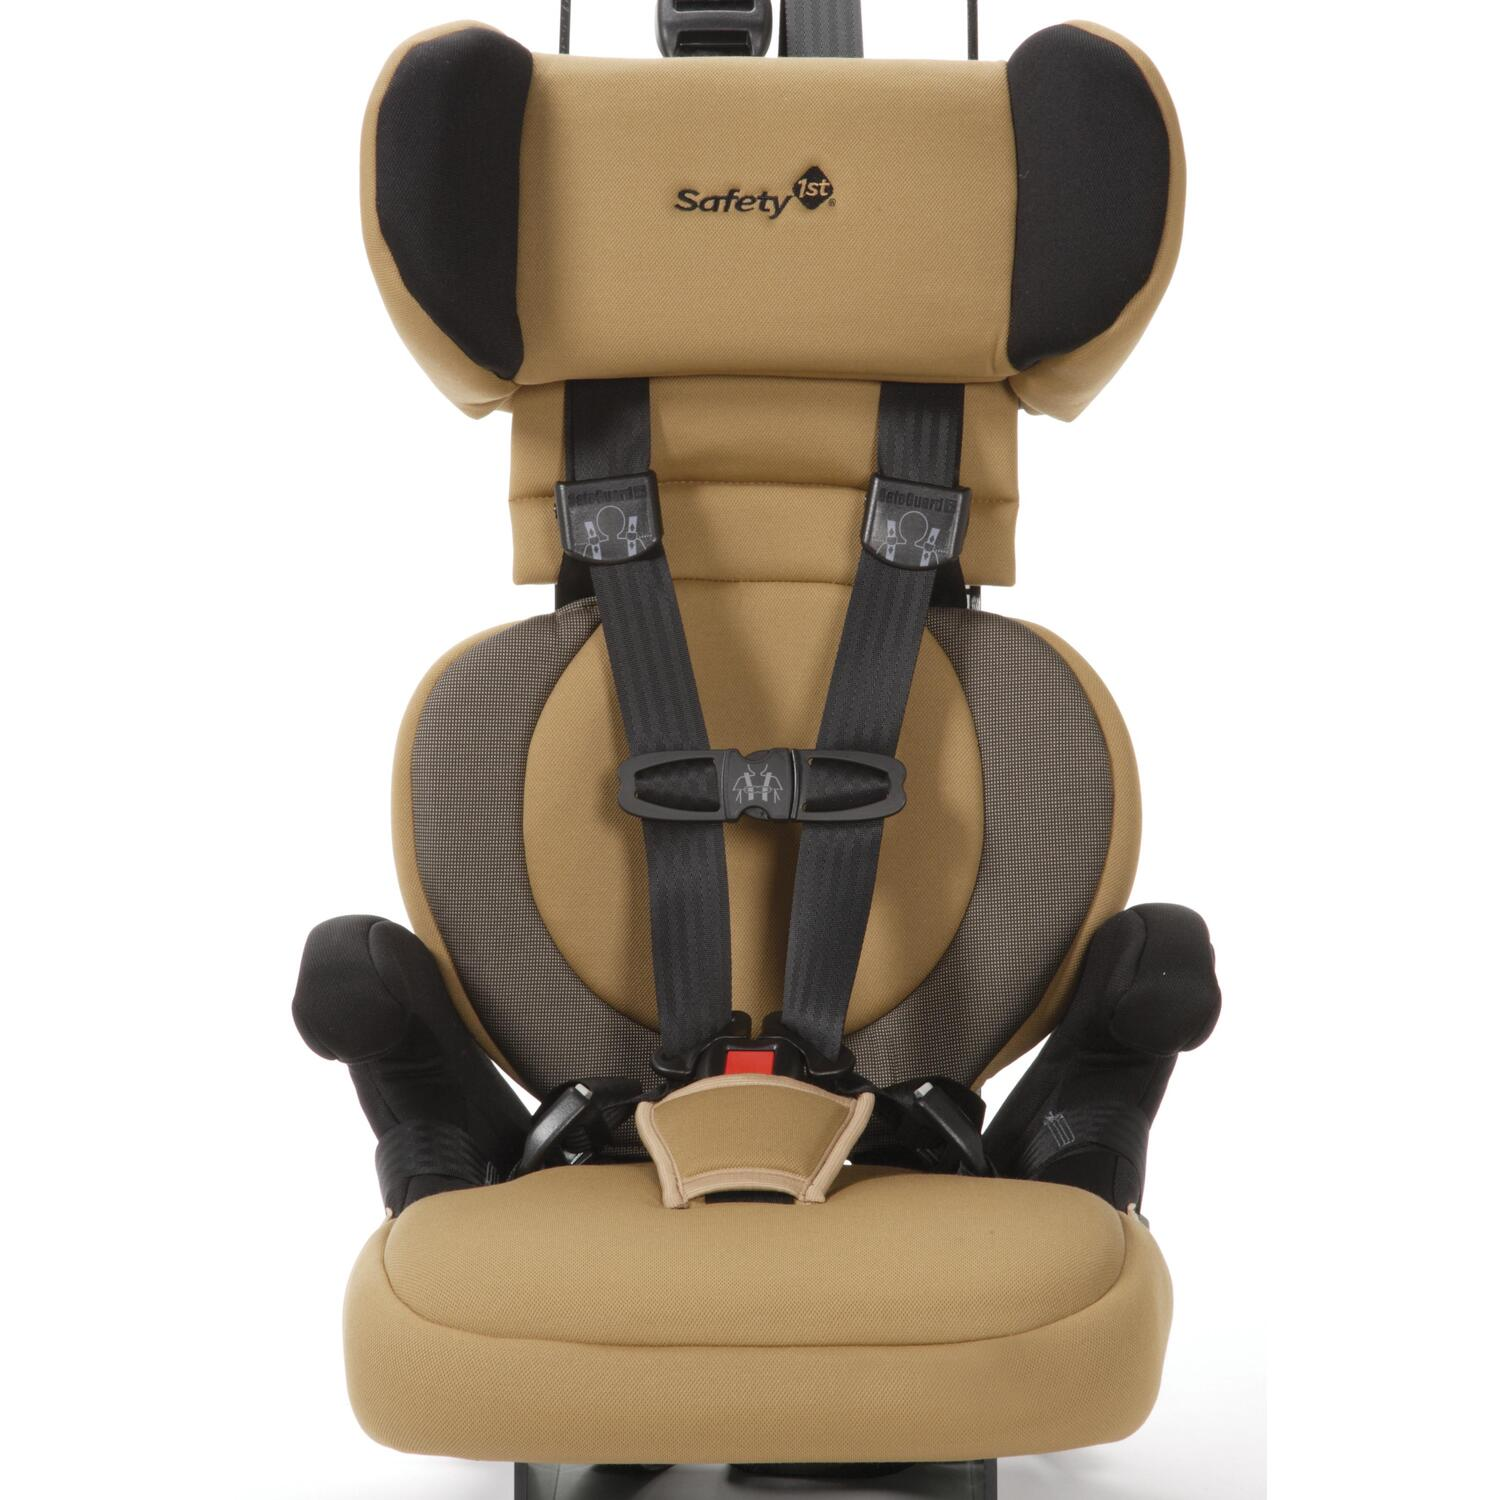 safety 1st safety 1st go hybrid booster car seat clarksville by oj commerce 22256ahf. Black Bedroom Furniture Sets. Home Design Ideas